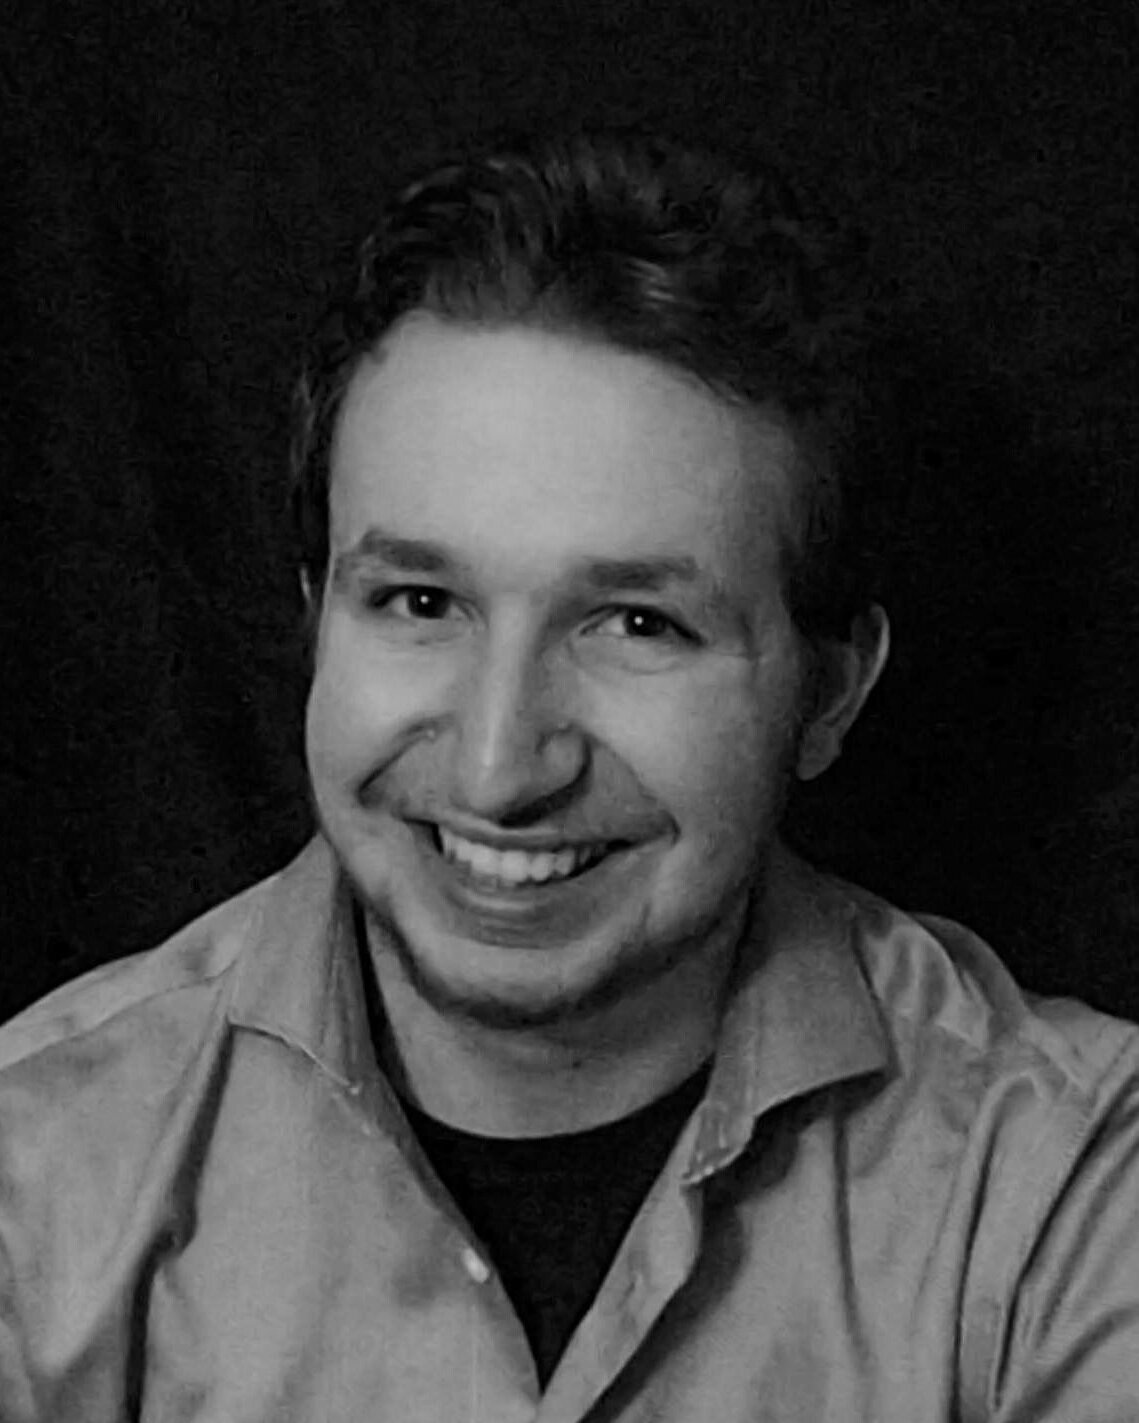 Michael A. Marino | Talent Manager | Hero Artists - At Hero Artists we currently represent actors who are Ojibwa, Cree and Denesuline. We've had talent be a part of several Indigenous lead projects, most notably the 2017 feature film Indian Horse. Our goal is to expand our roster of actors, writers, directors and hosts to create more opportunities for talent and have more voices heard within the film, TV and entertainment industry. We both pitch talent for roles in productions across Canada as well as package projects to be created on both local and international scales. We thank you for your consideration and hope to be a part of this wonderful event!Looking for: Actors/performers, but also open to content creators, for the film and television sector. Ideally we would love to help creatives find roles in areas that are unfortunately unrepresented and open doors that would otherwise be inaccessible to those without proper representation.